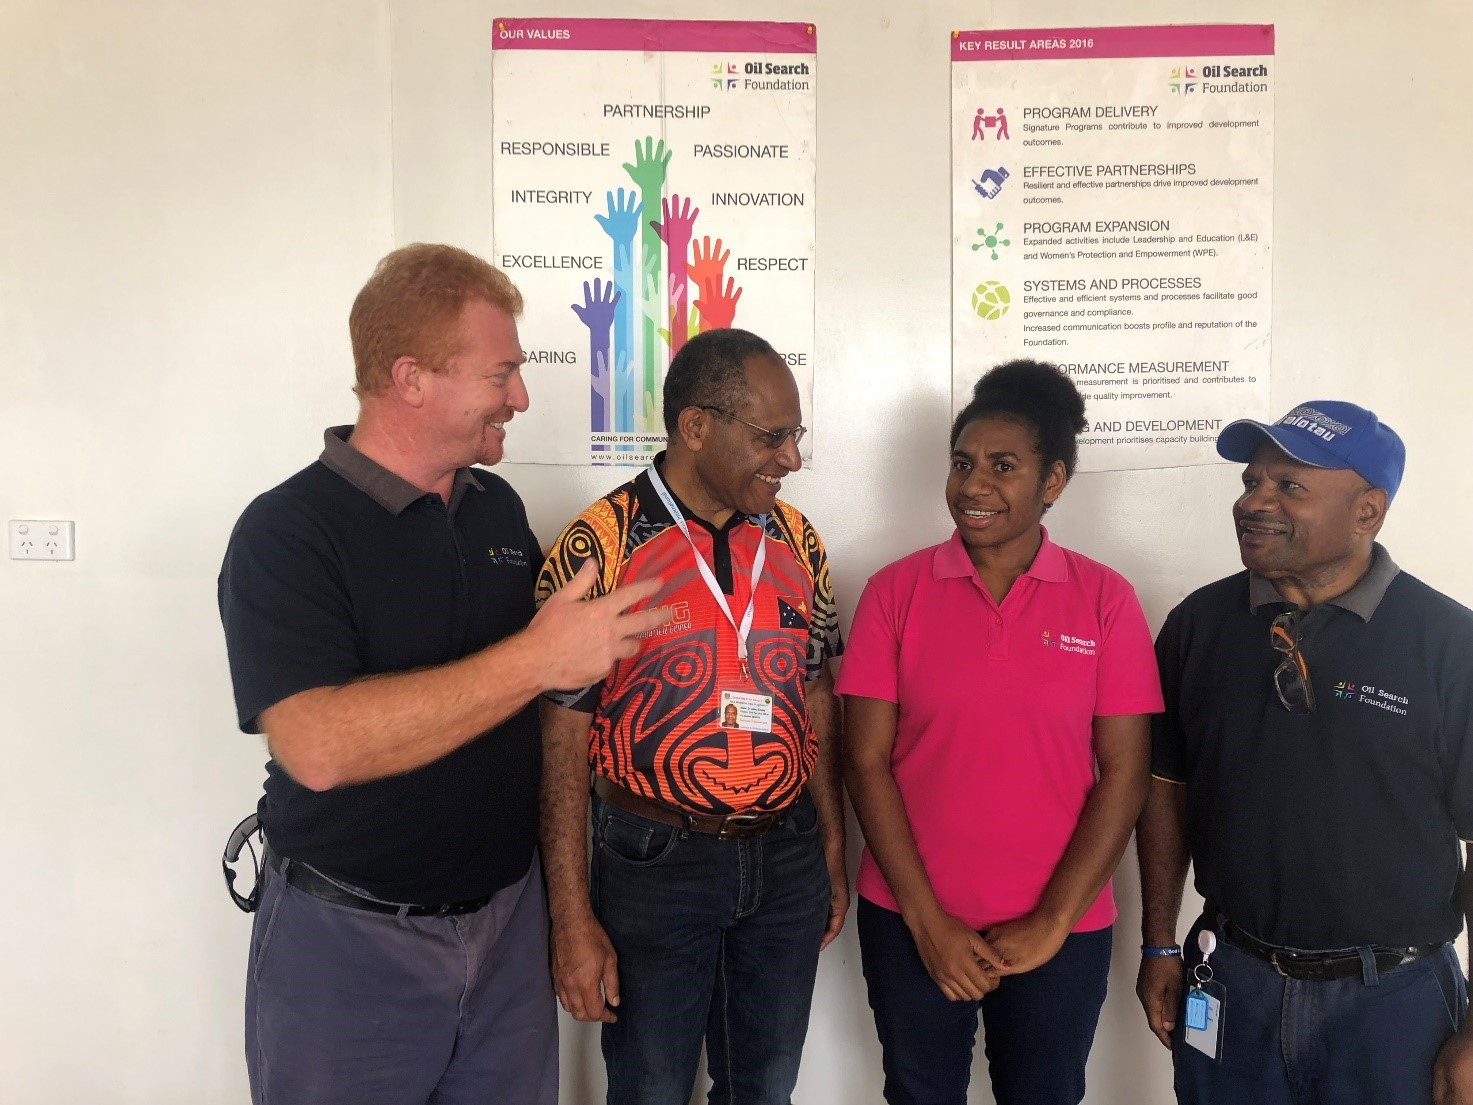 OSF staff in Hela, Hela PHA CEO Dr. James Kintwa (second from left) and Jasmine Tom (third from left) at Hela Provincial Hospital.